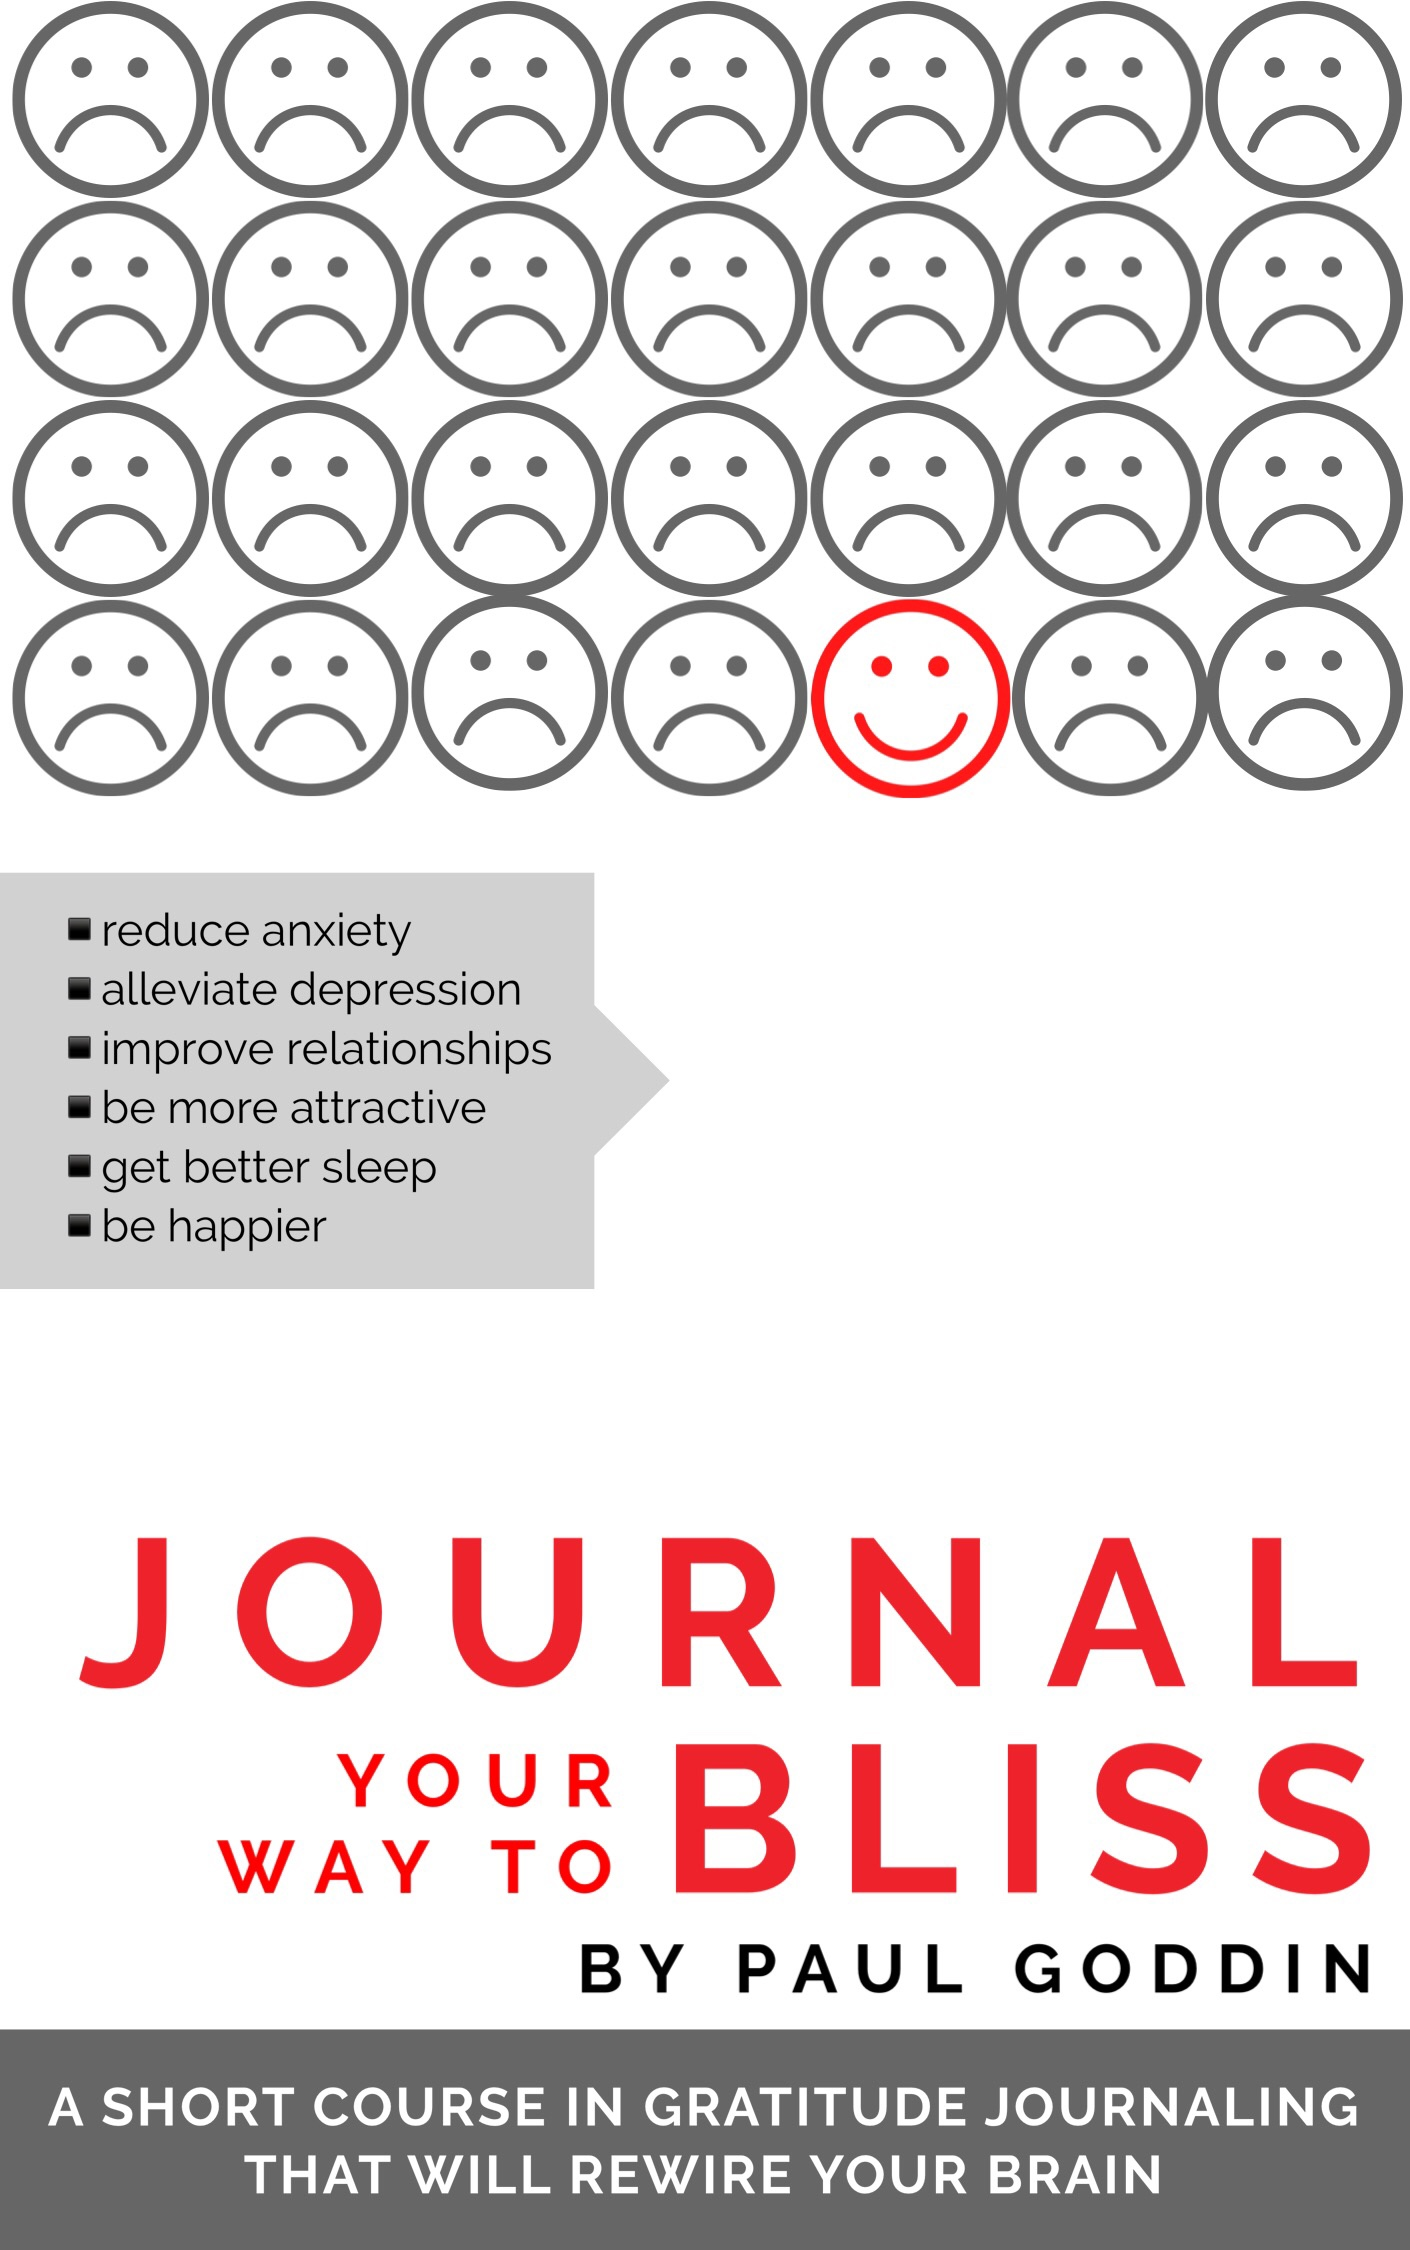 Journal Your Way to Bliss book cover